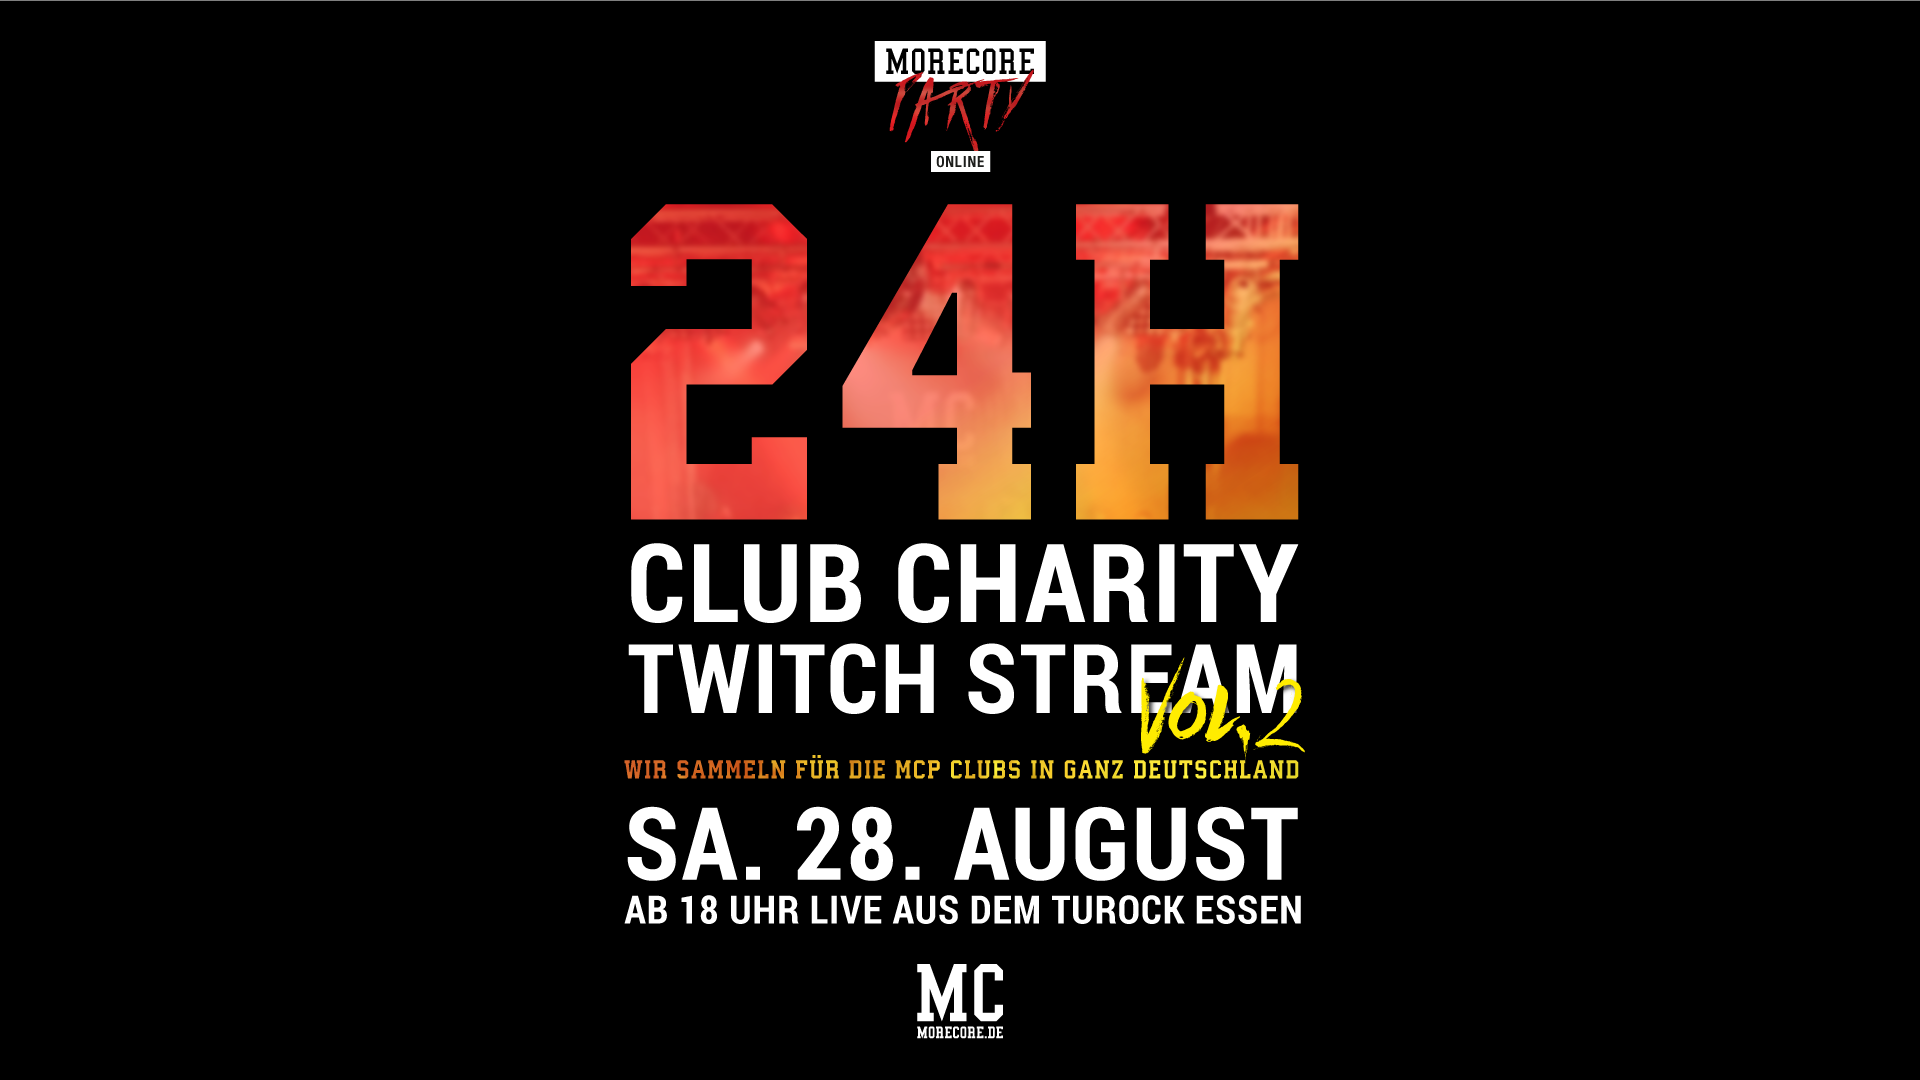 MoreCore Party 24h Club Charity Twitch Livestream